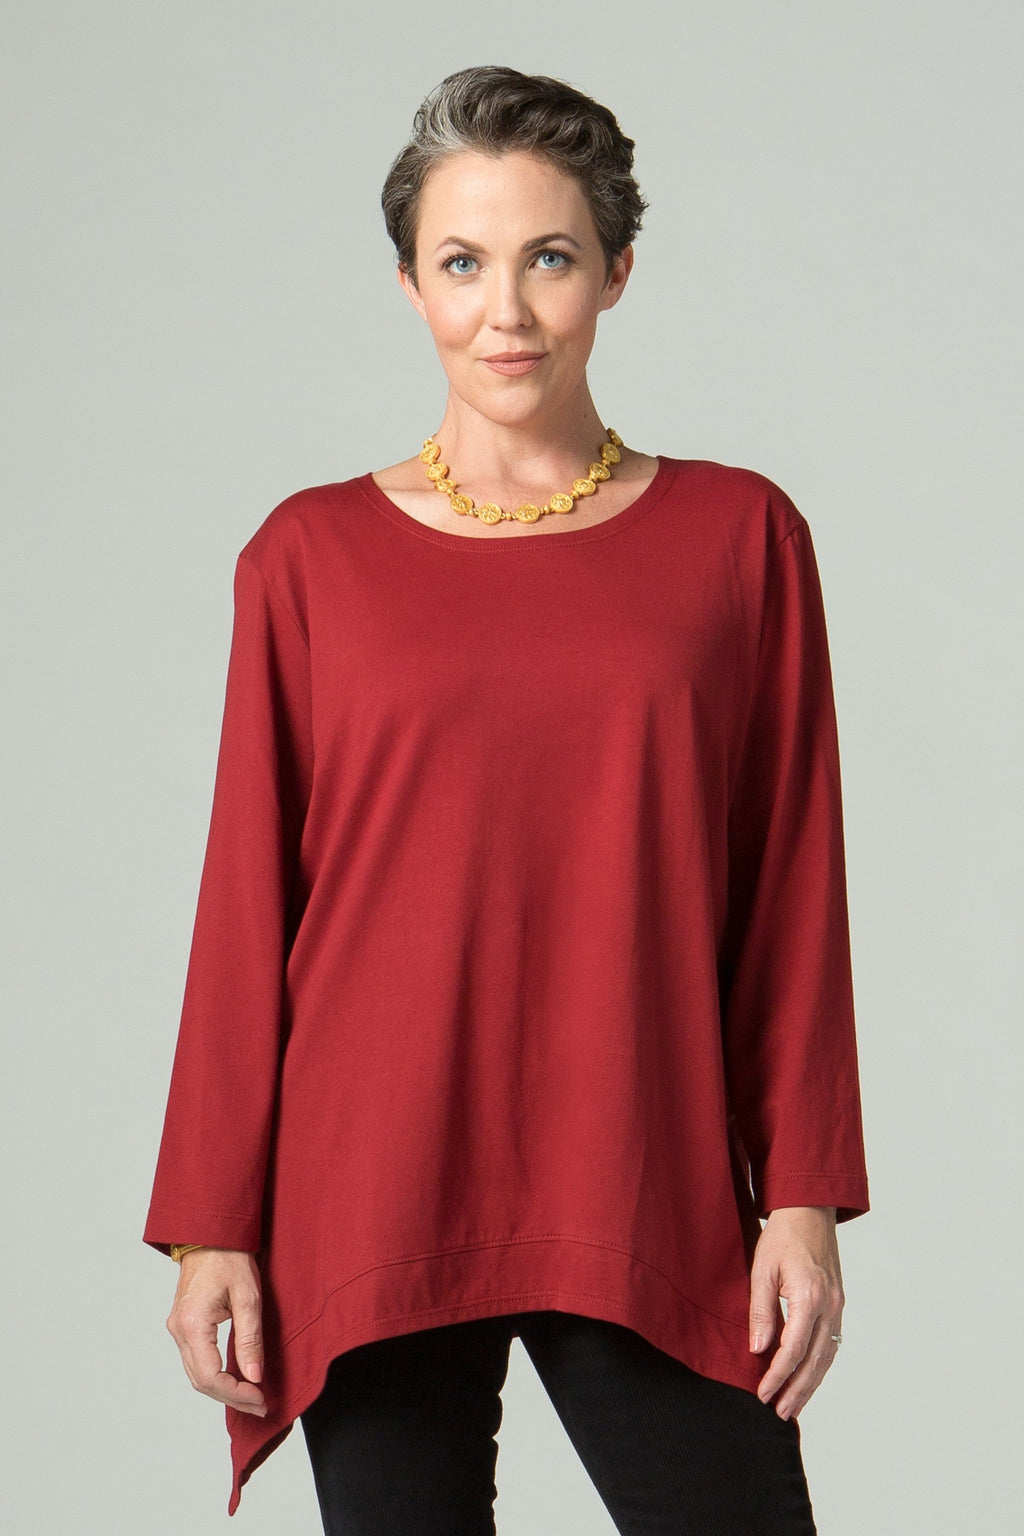 Long Sleeve T with Side Points - New Orleans Knitwear